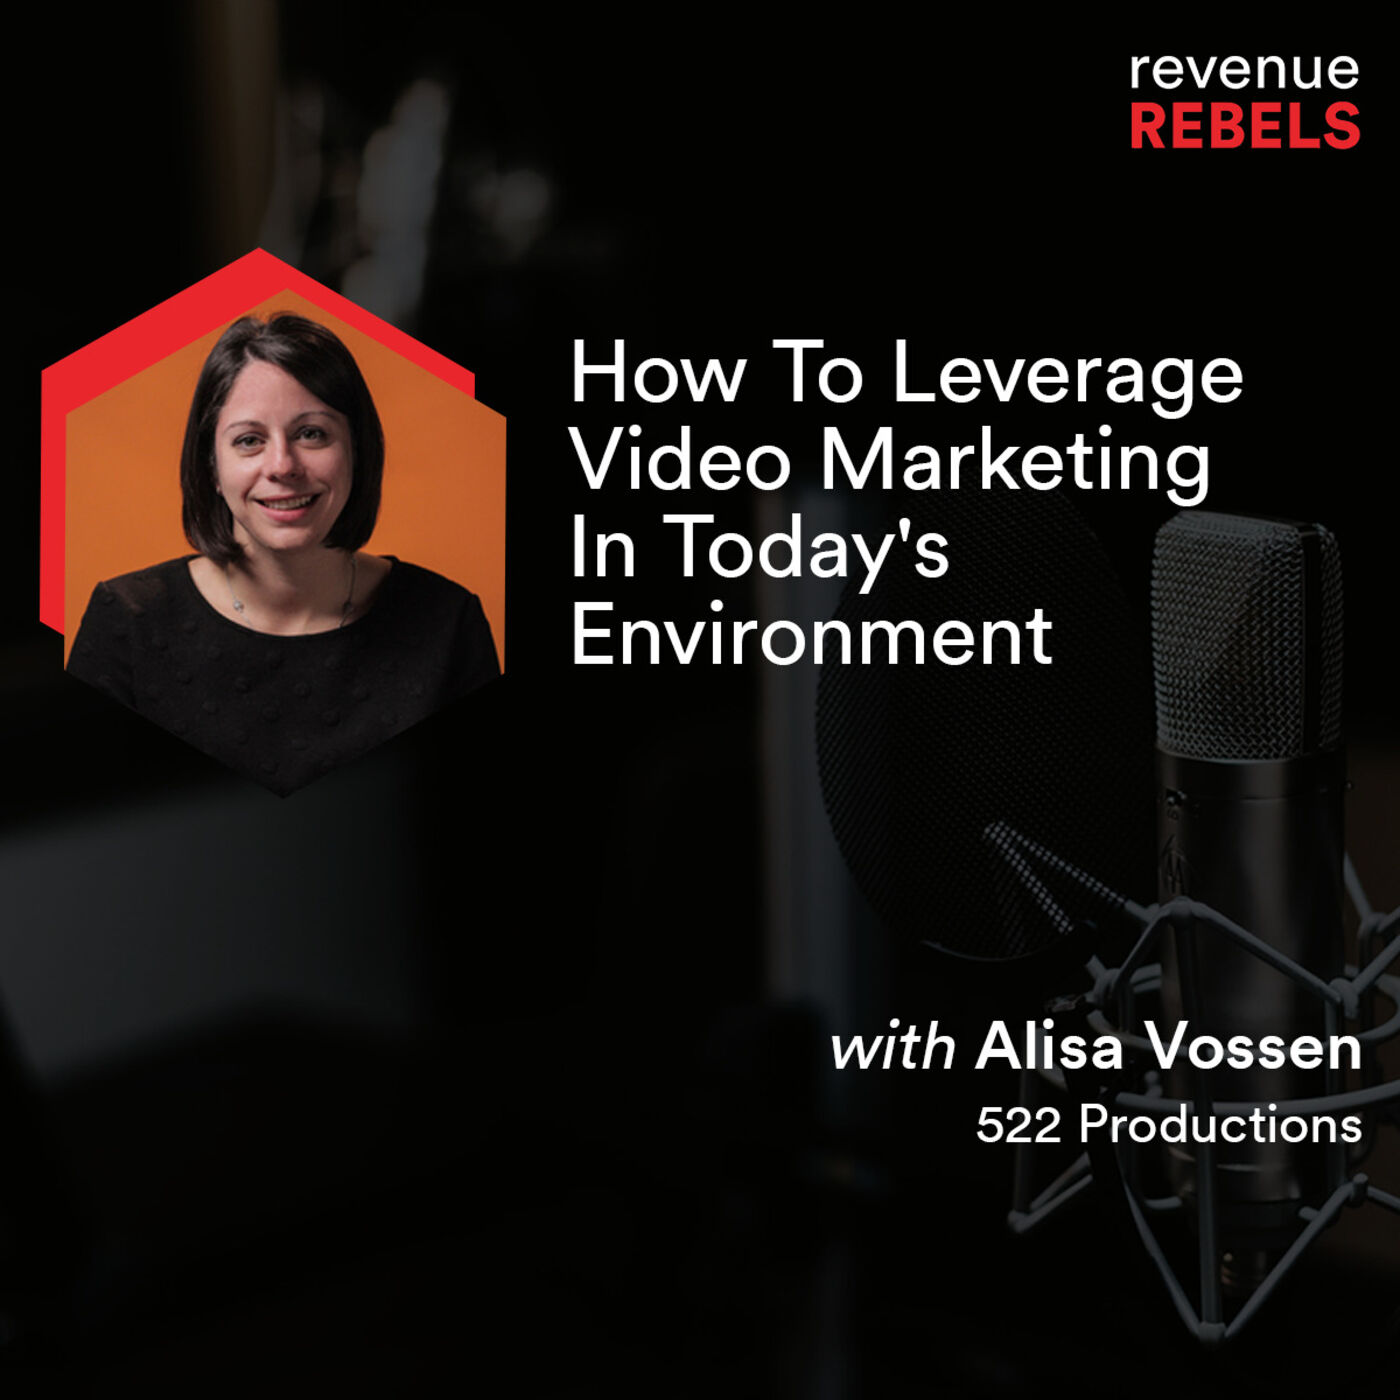 How To Leverage Video Marketing In Today's Environment